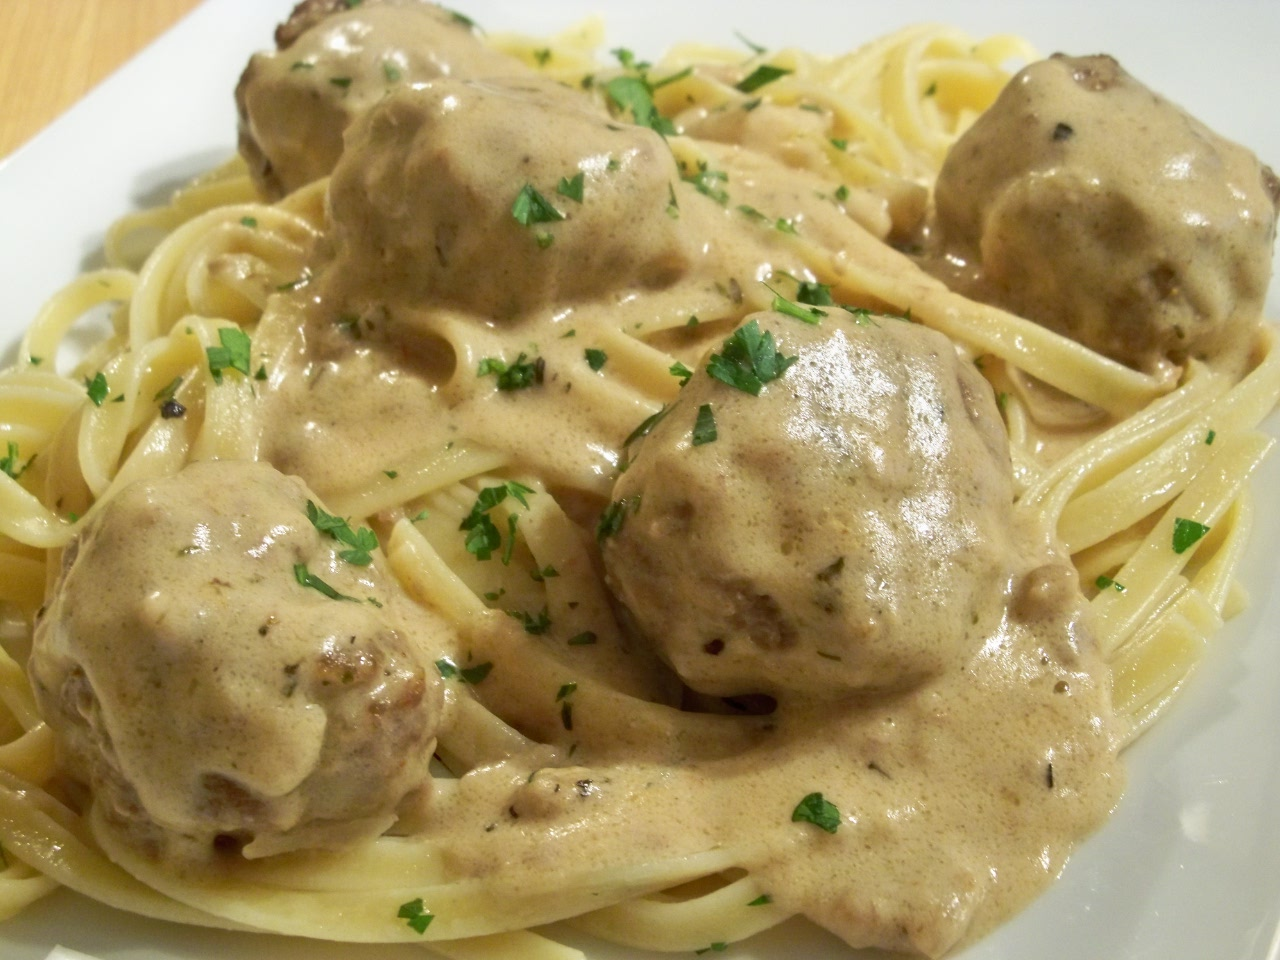 Jun 18, · If you've tried this Swedish meatballs with sour cream sauce or any other recipe on the blog, I'd love the hear what you thought about it in the comments below. I love hearing from you! I love hearing from you!5/5(12).